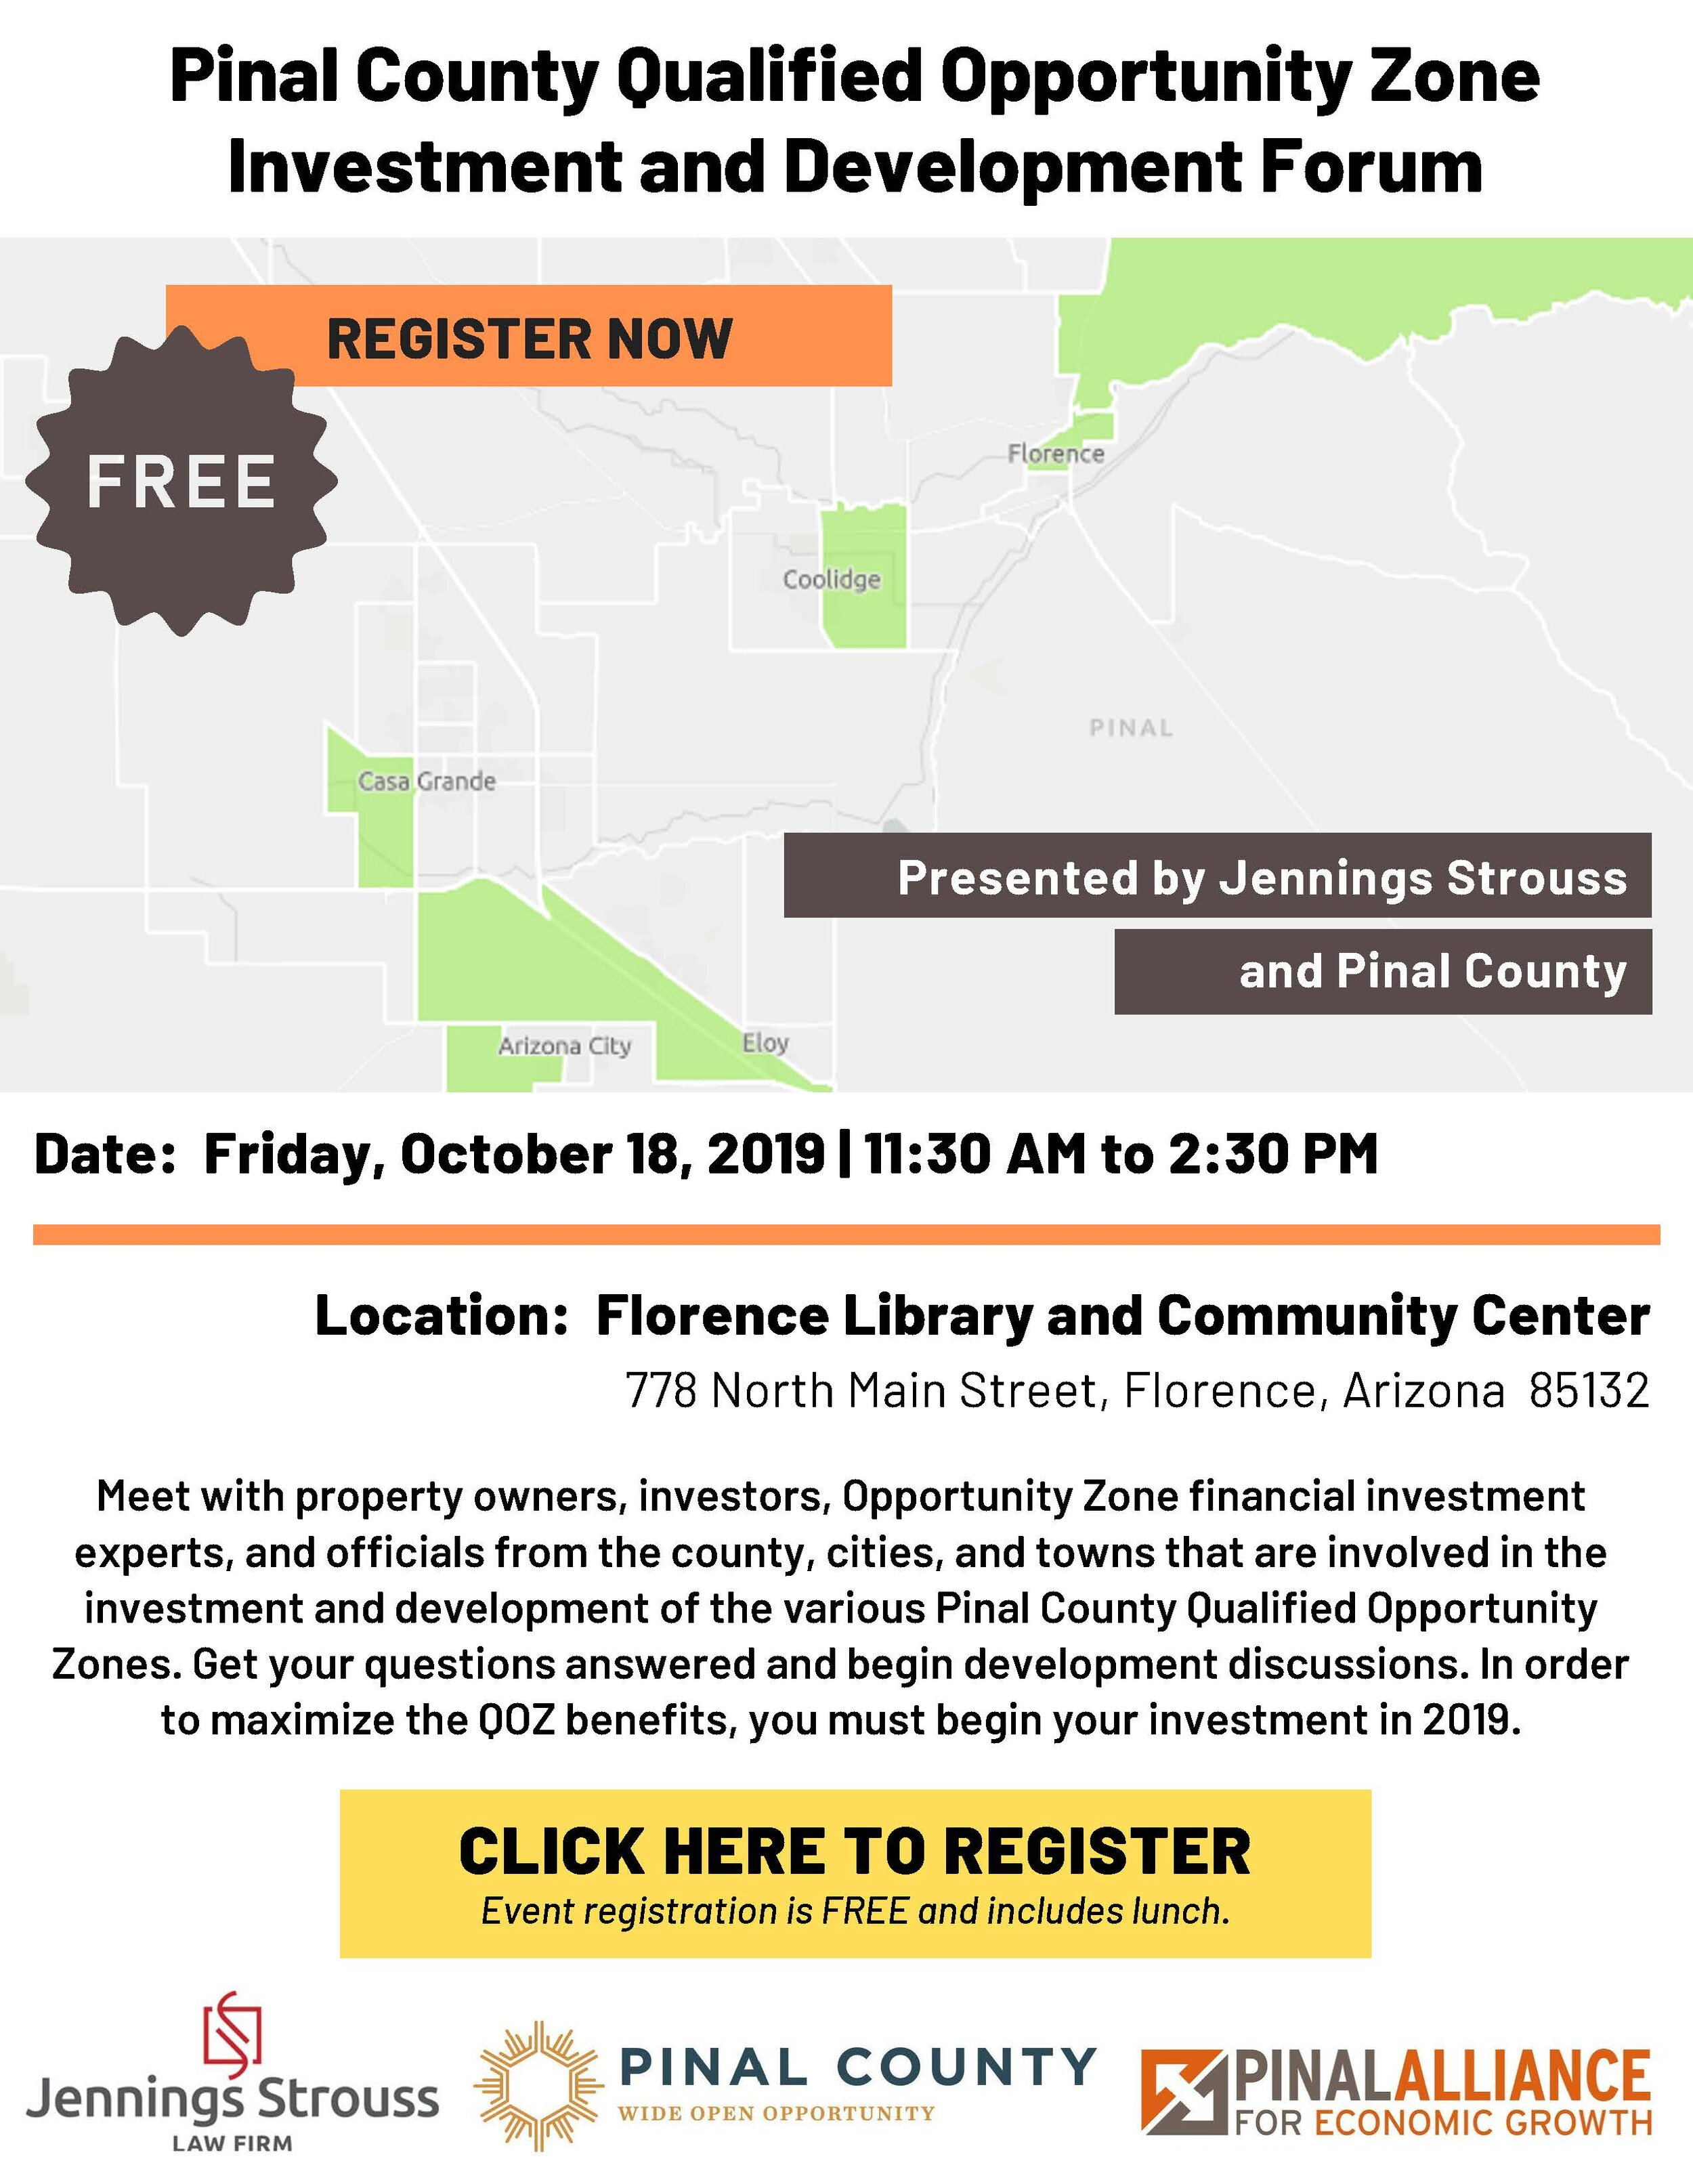 PINAL COUNTY QUALIFIED OPPORTUNITY ZONE INVESTMENT AND DEVELOPMENT FORUM Final_Page_1.jpg